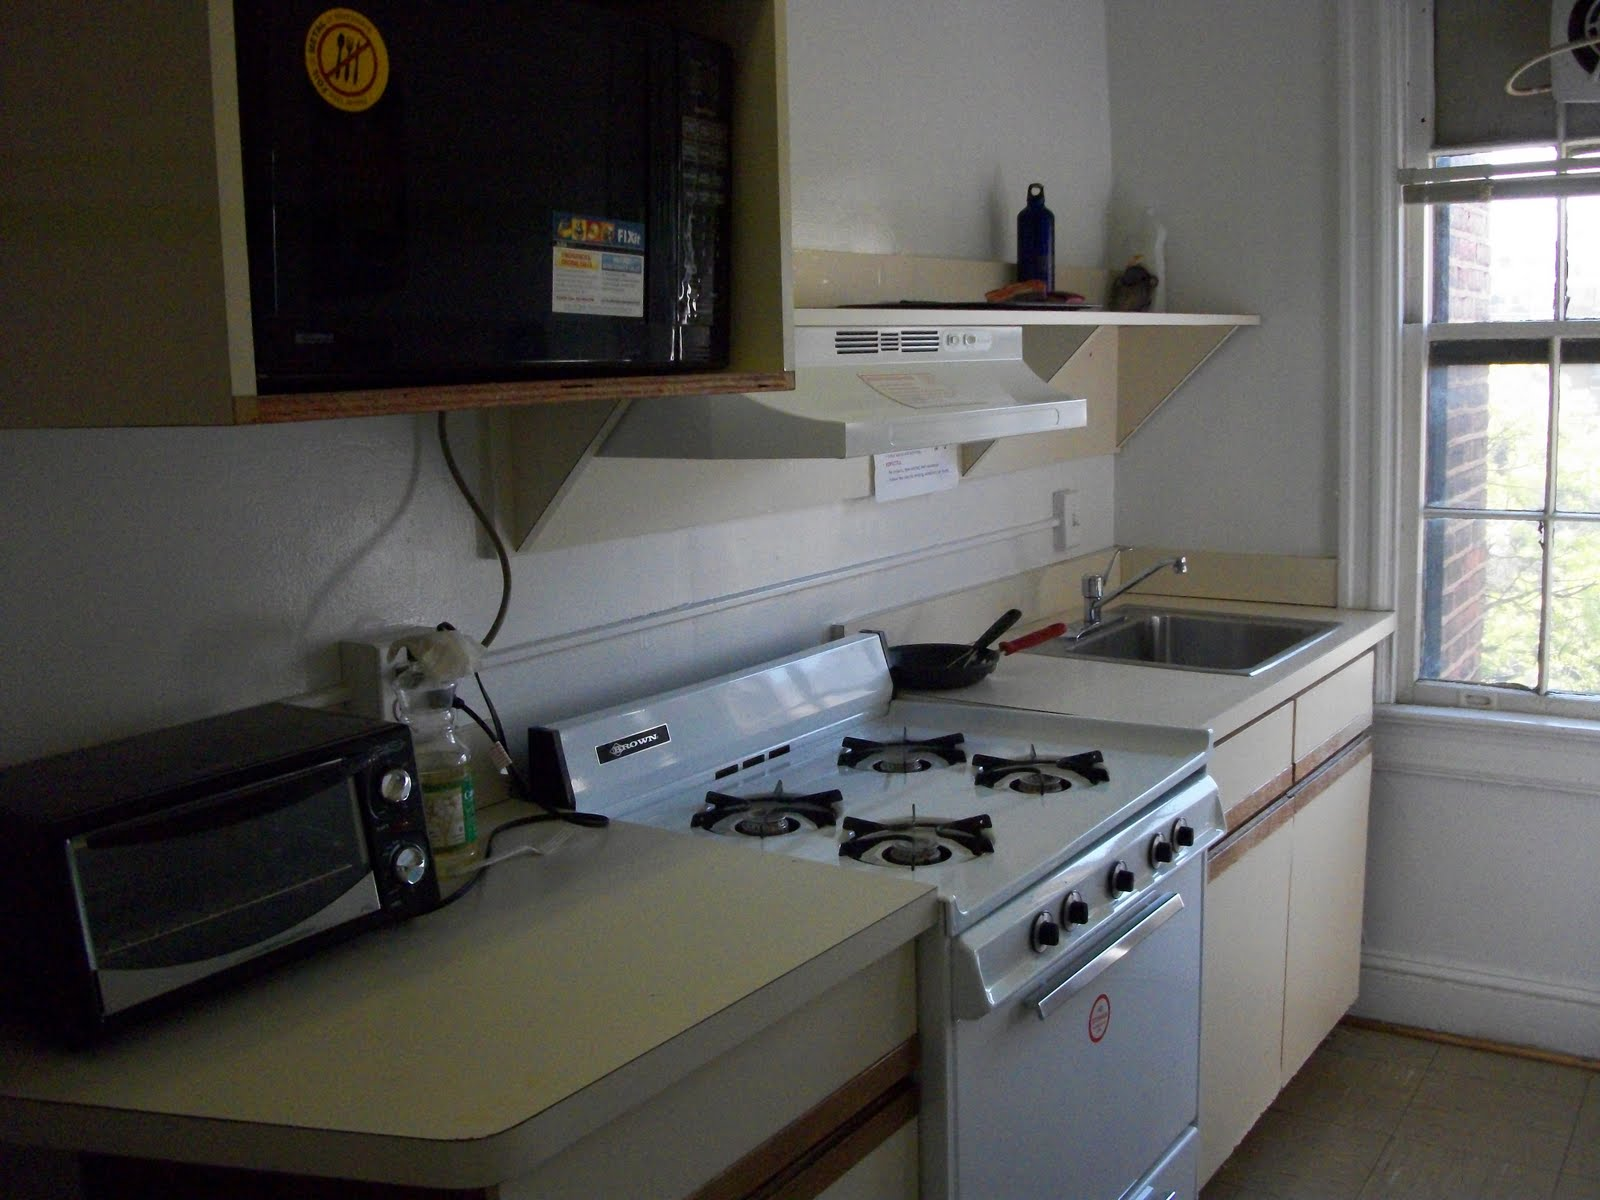 gw admissions student blog freshman residence halls part one each floor has a small kitchen for residents to use